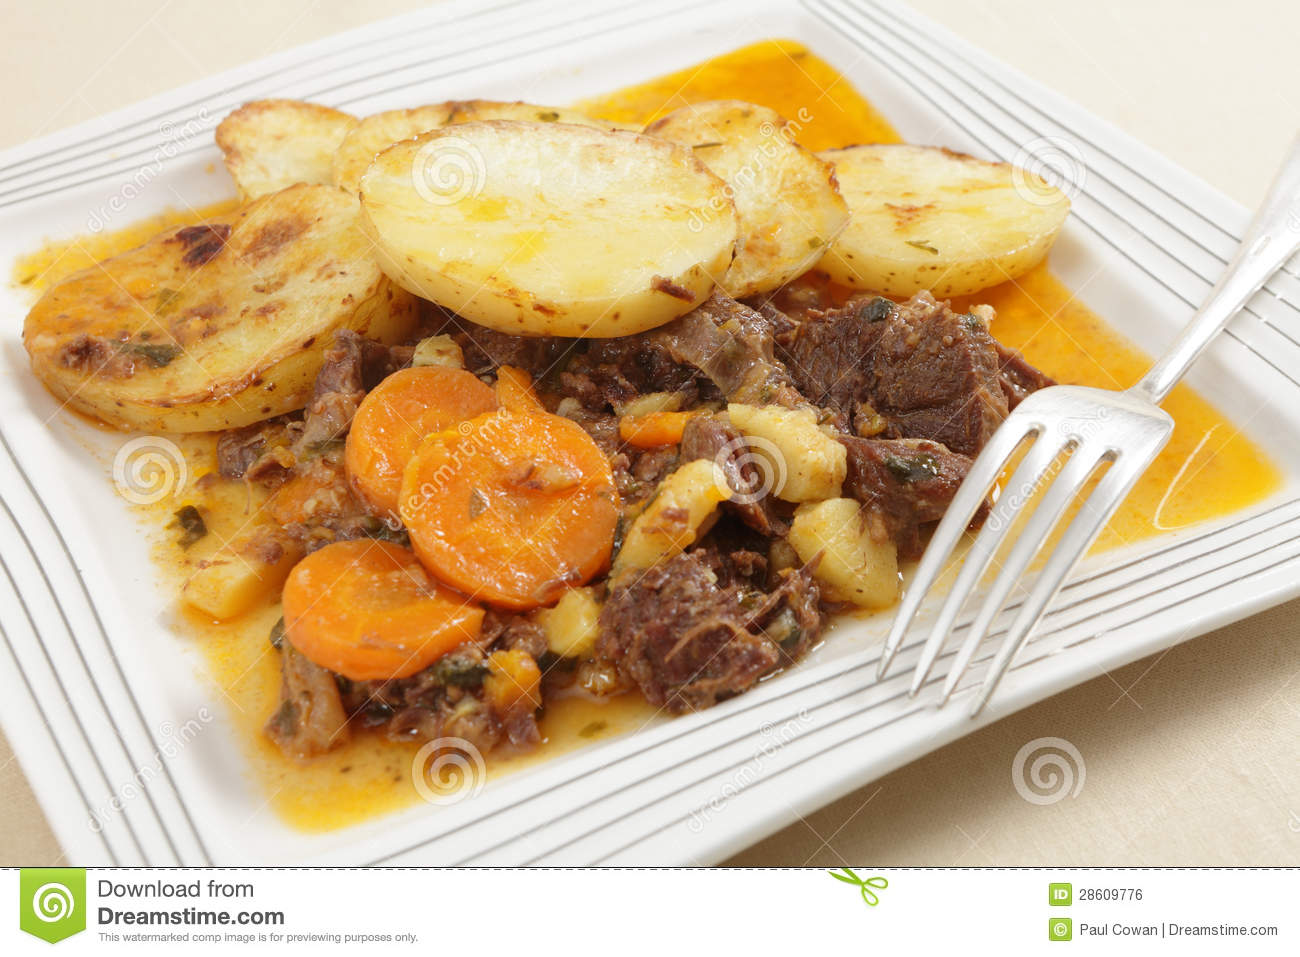 Beef Stew With A Fork Royalty Free Stock Image   Image  28609776